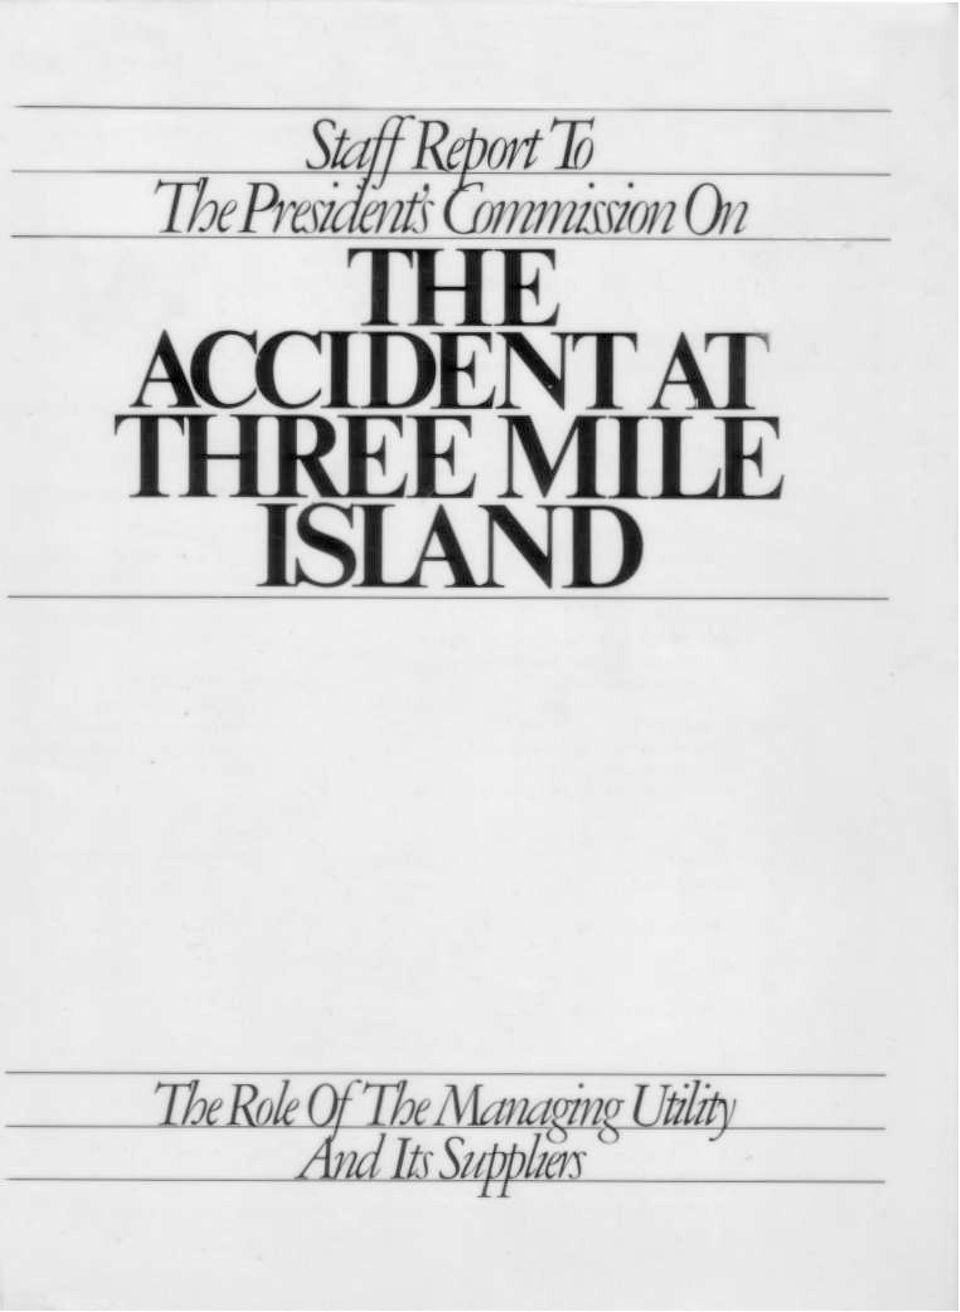 THE PRESIDENT'S COMMISSION ON THE ACCIDENT AT THREE MILE ISLAND